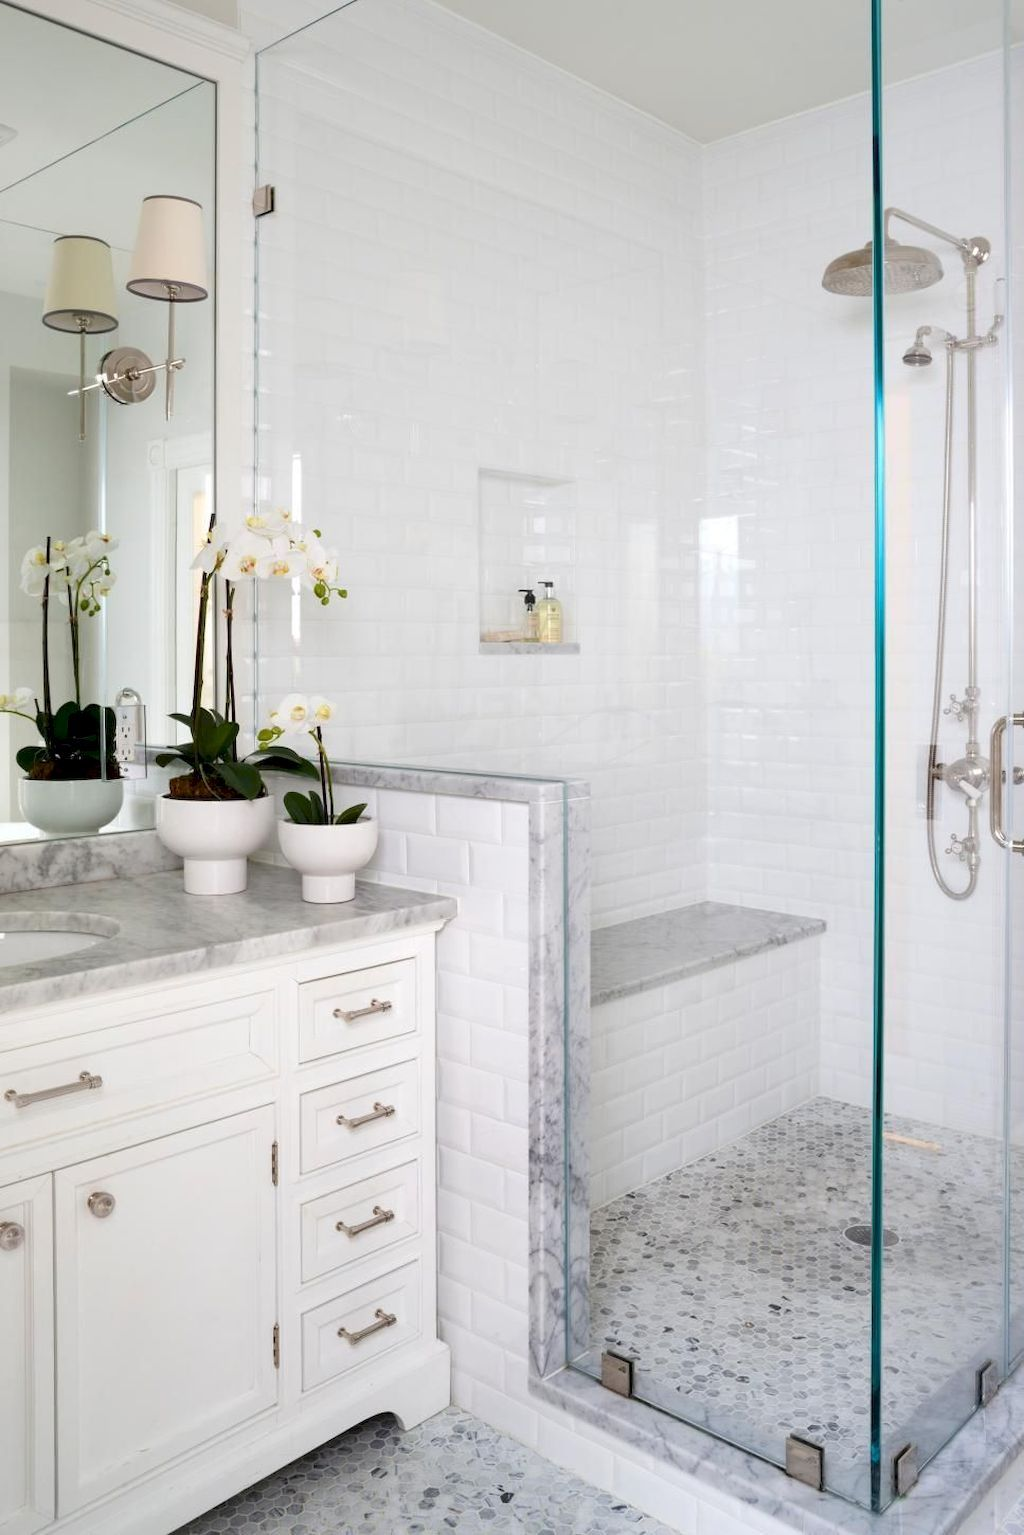 Nice 60 Cool Small Bathroom Shower Remodel Ideas https://homevialand ...